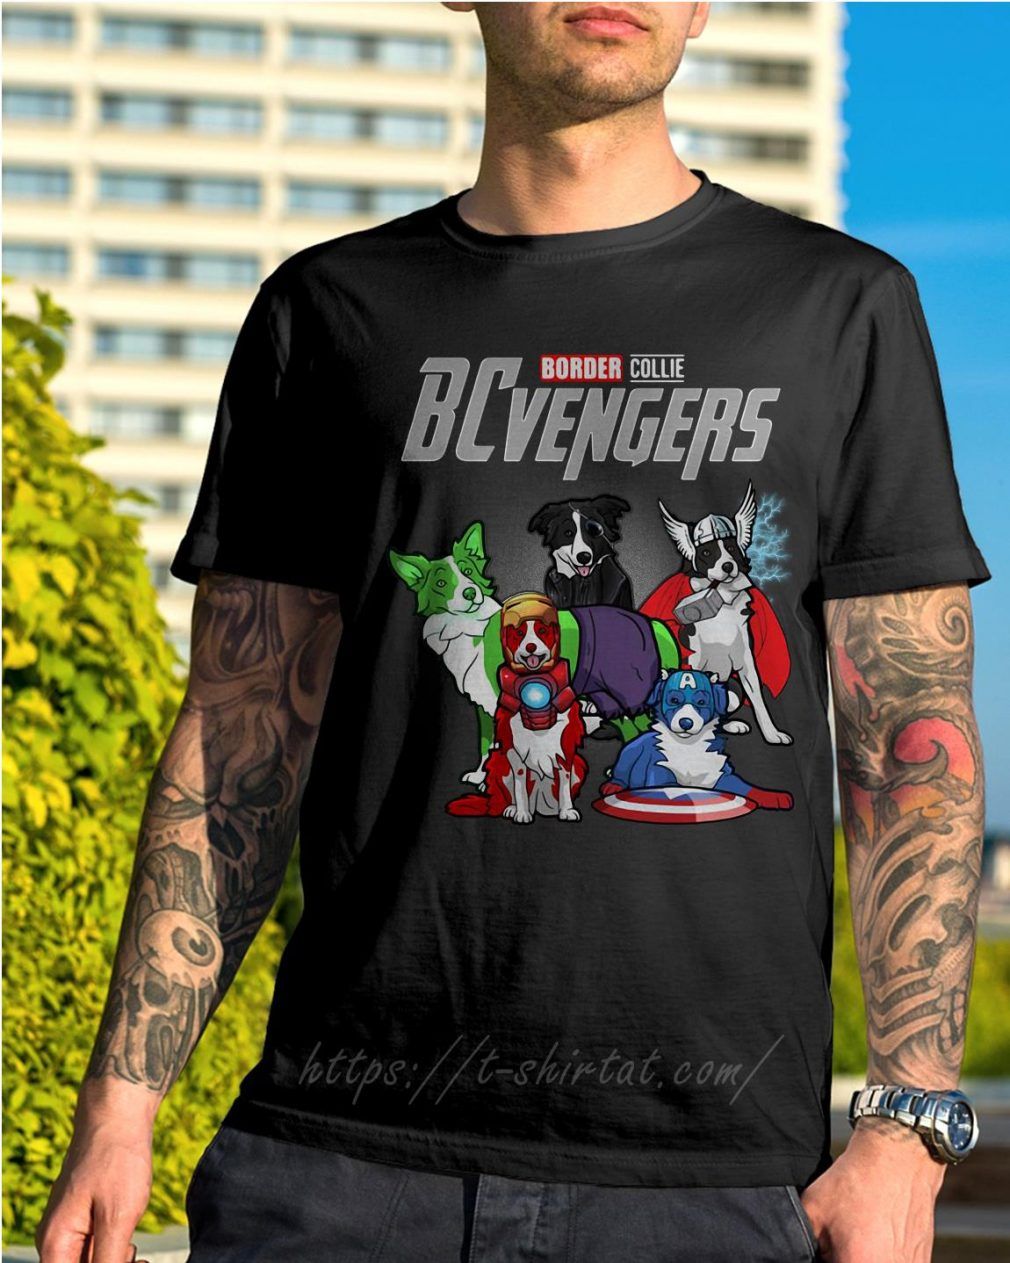 Marvel Border Collie BCvengers shirt